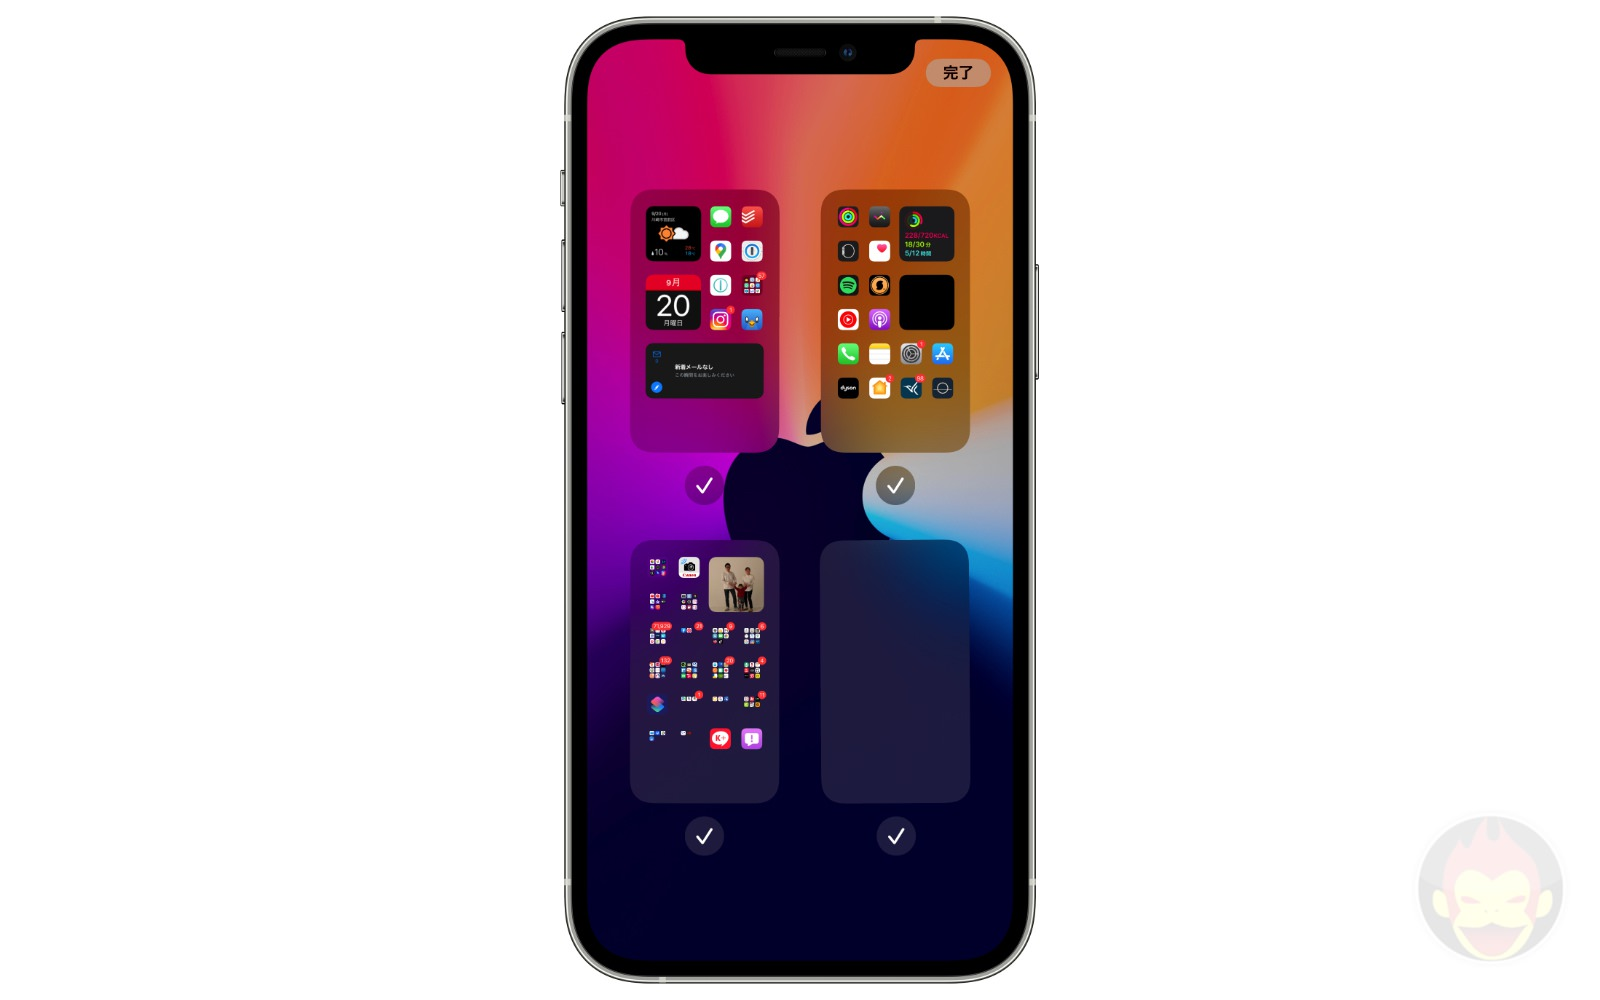 IOS15 Changing home screen order